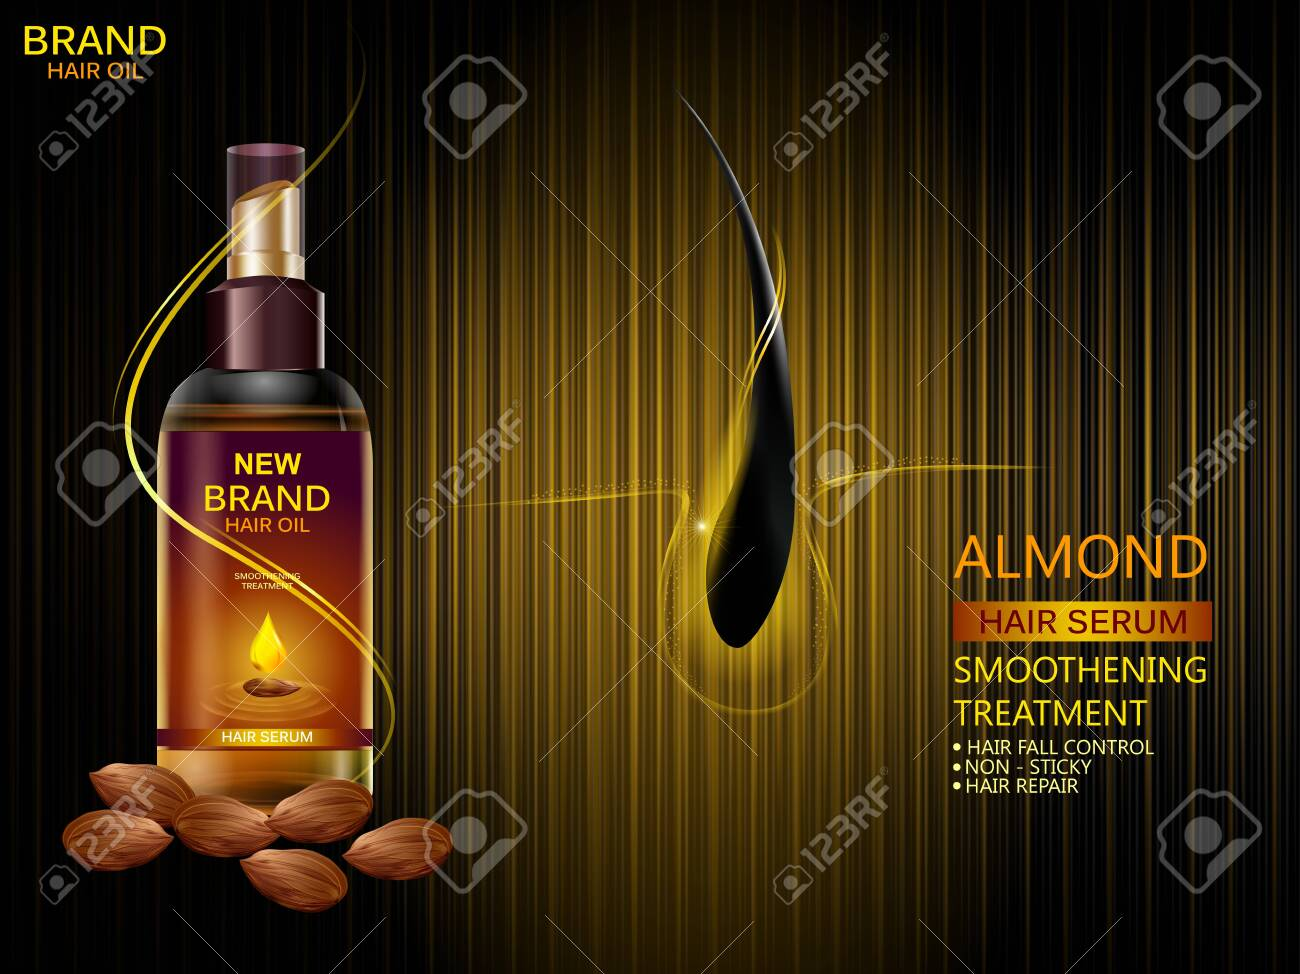 easy to edit vector illustration of Advertisement promotion banner for almond oil hair serum for smoothening and strong hair - 123760266